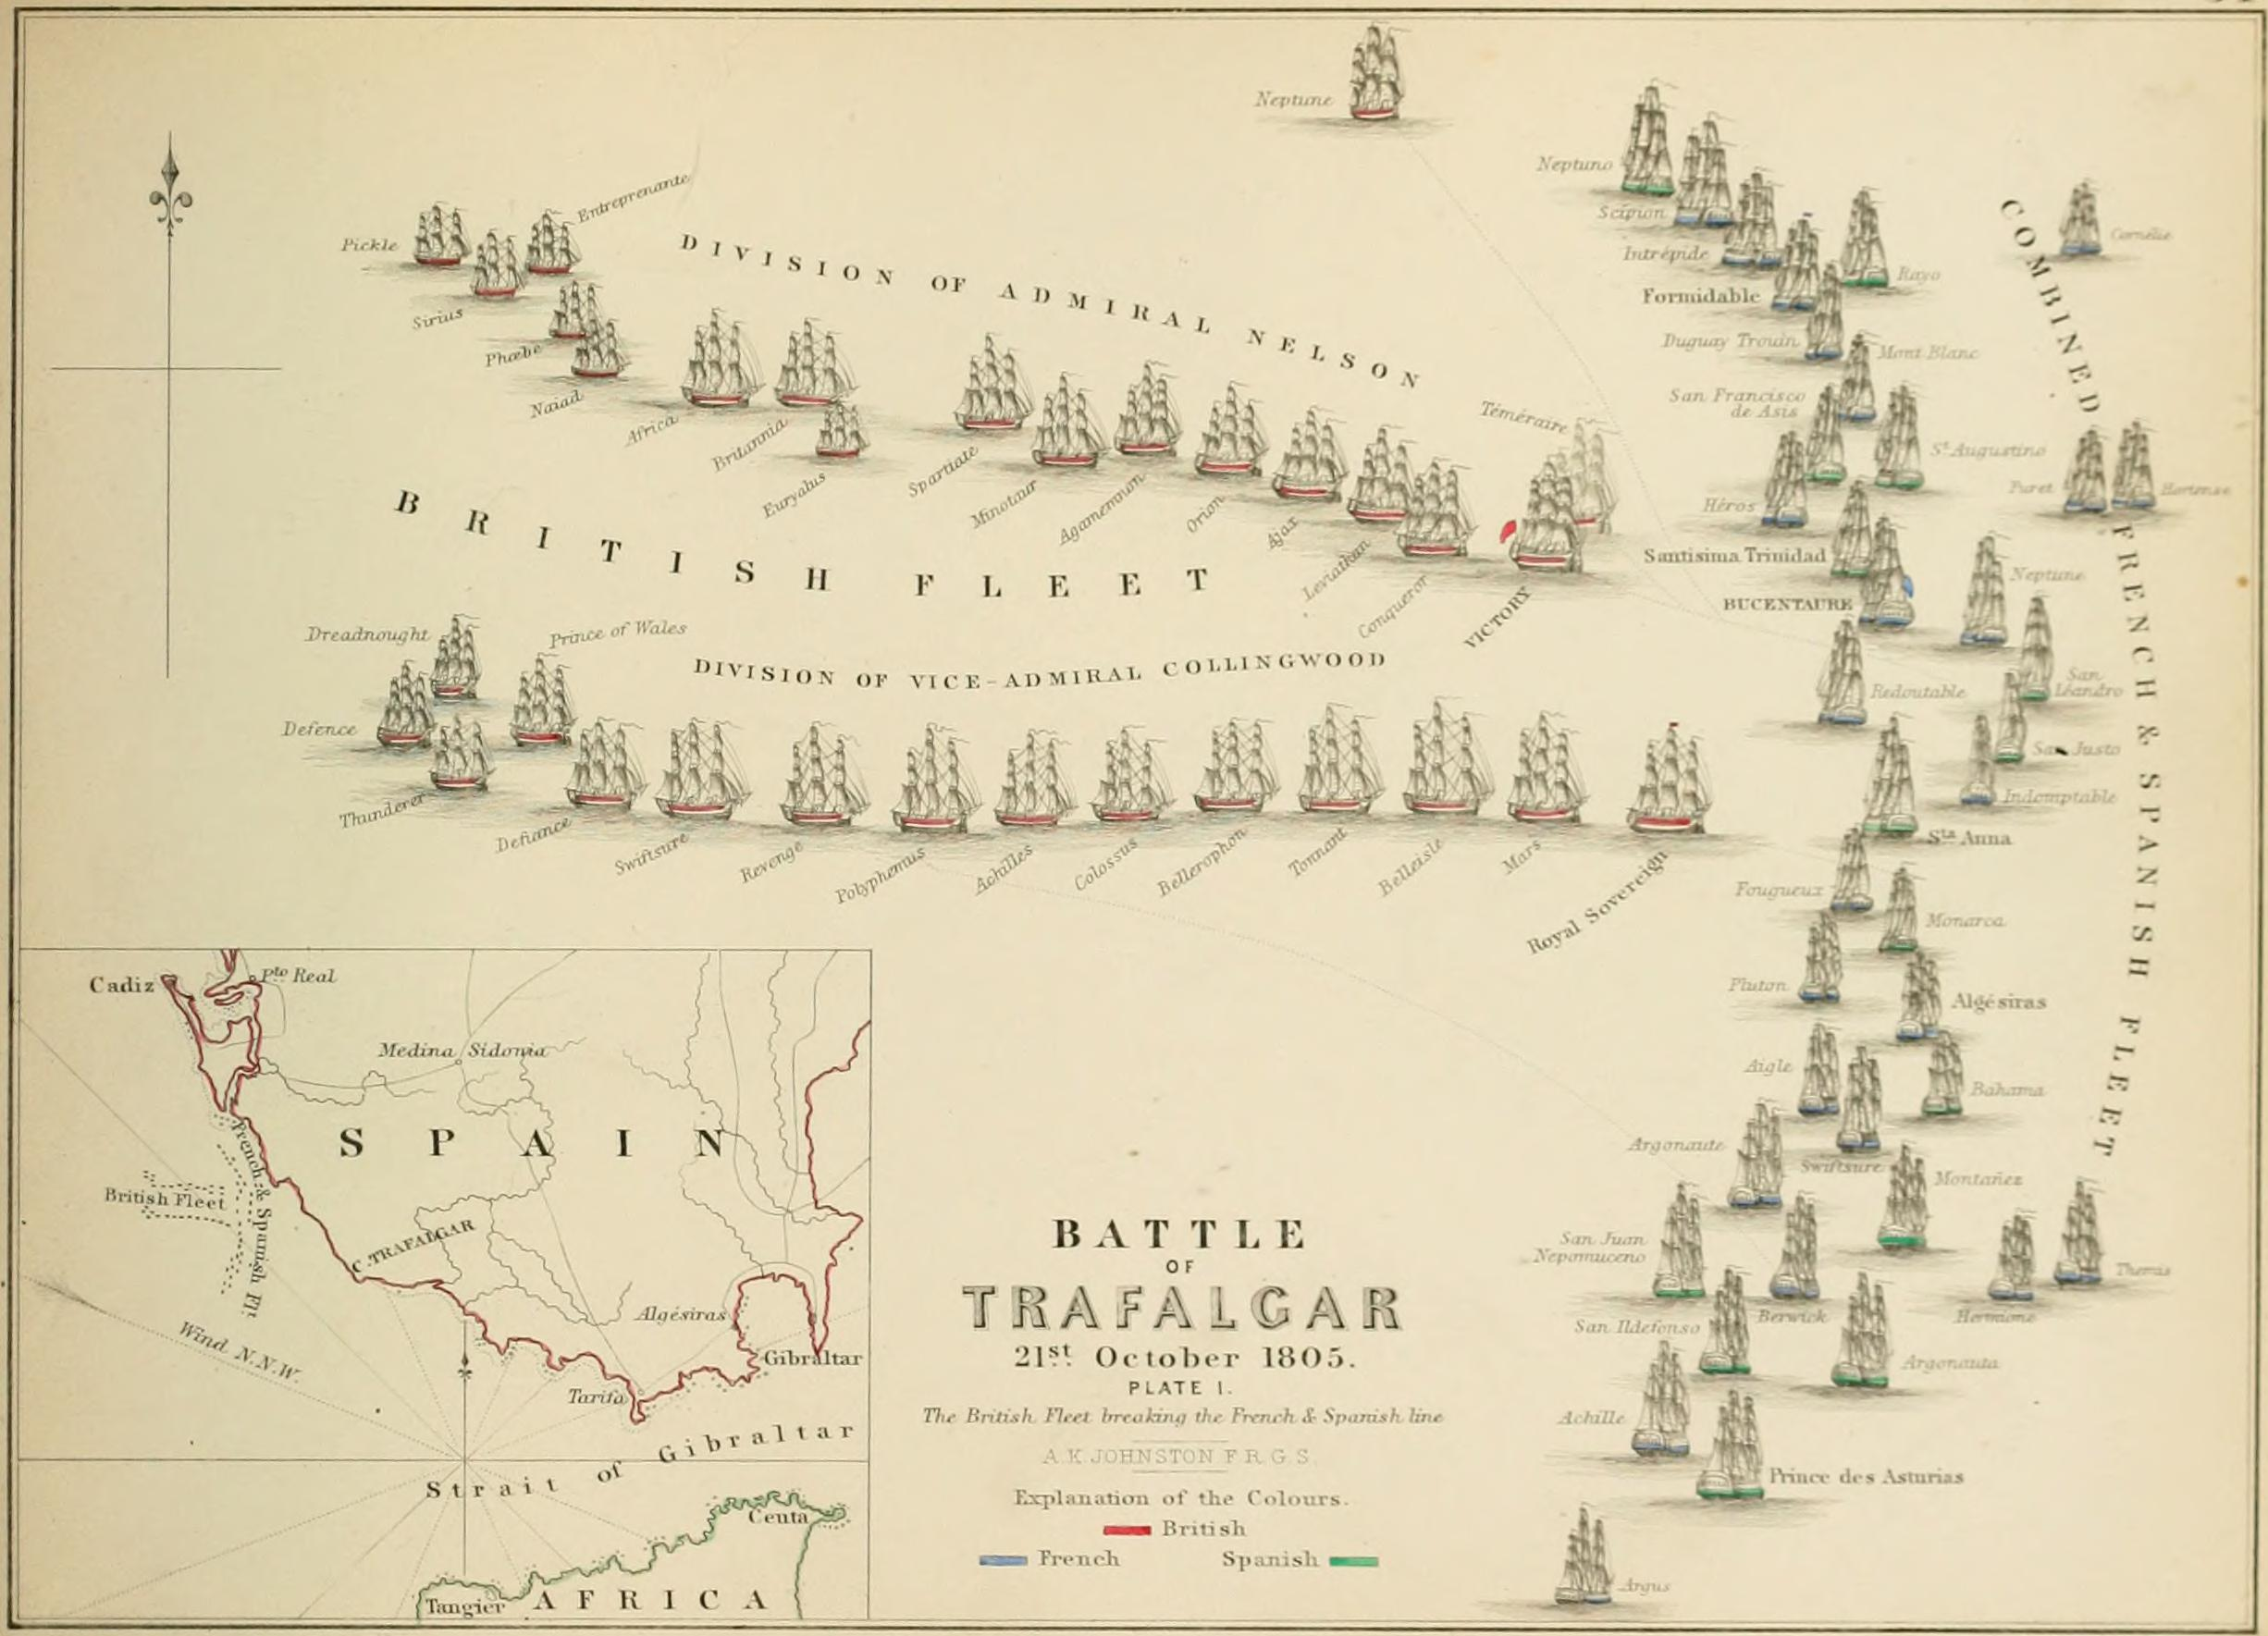 Battle_of_Trafalgar,_Plate_1